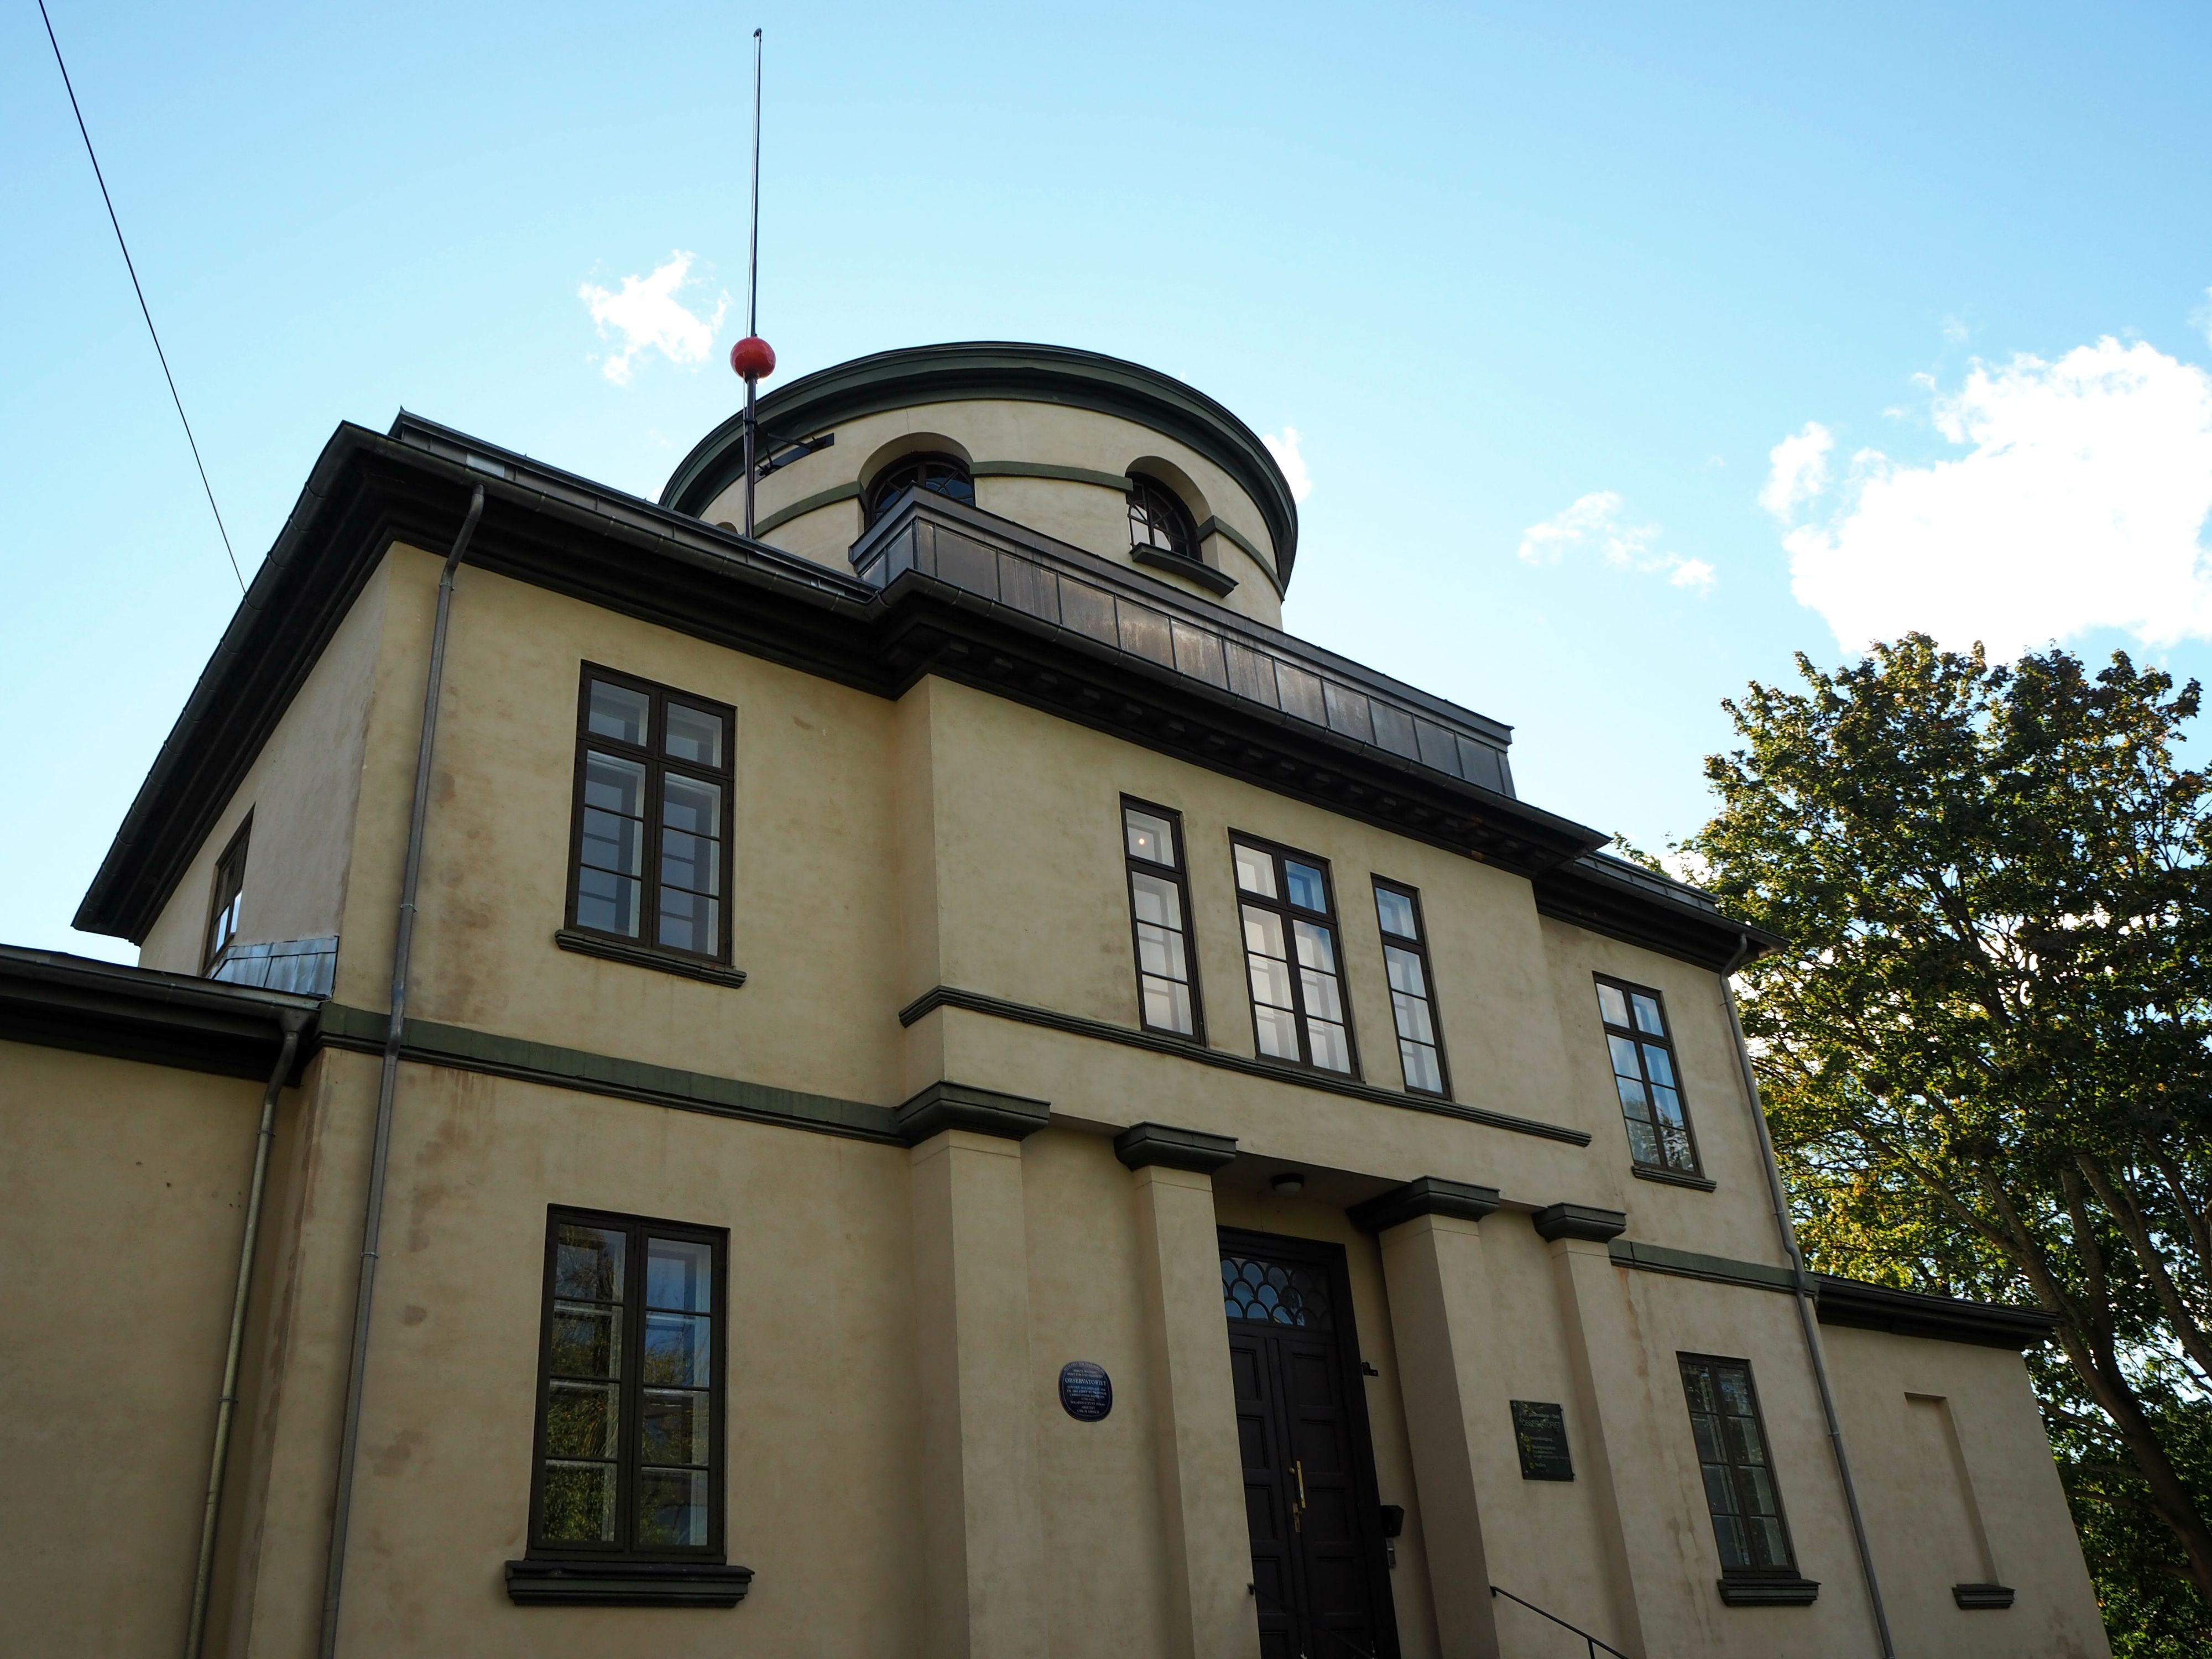 The University of Oslo's Observatory, built in 1833